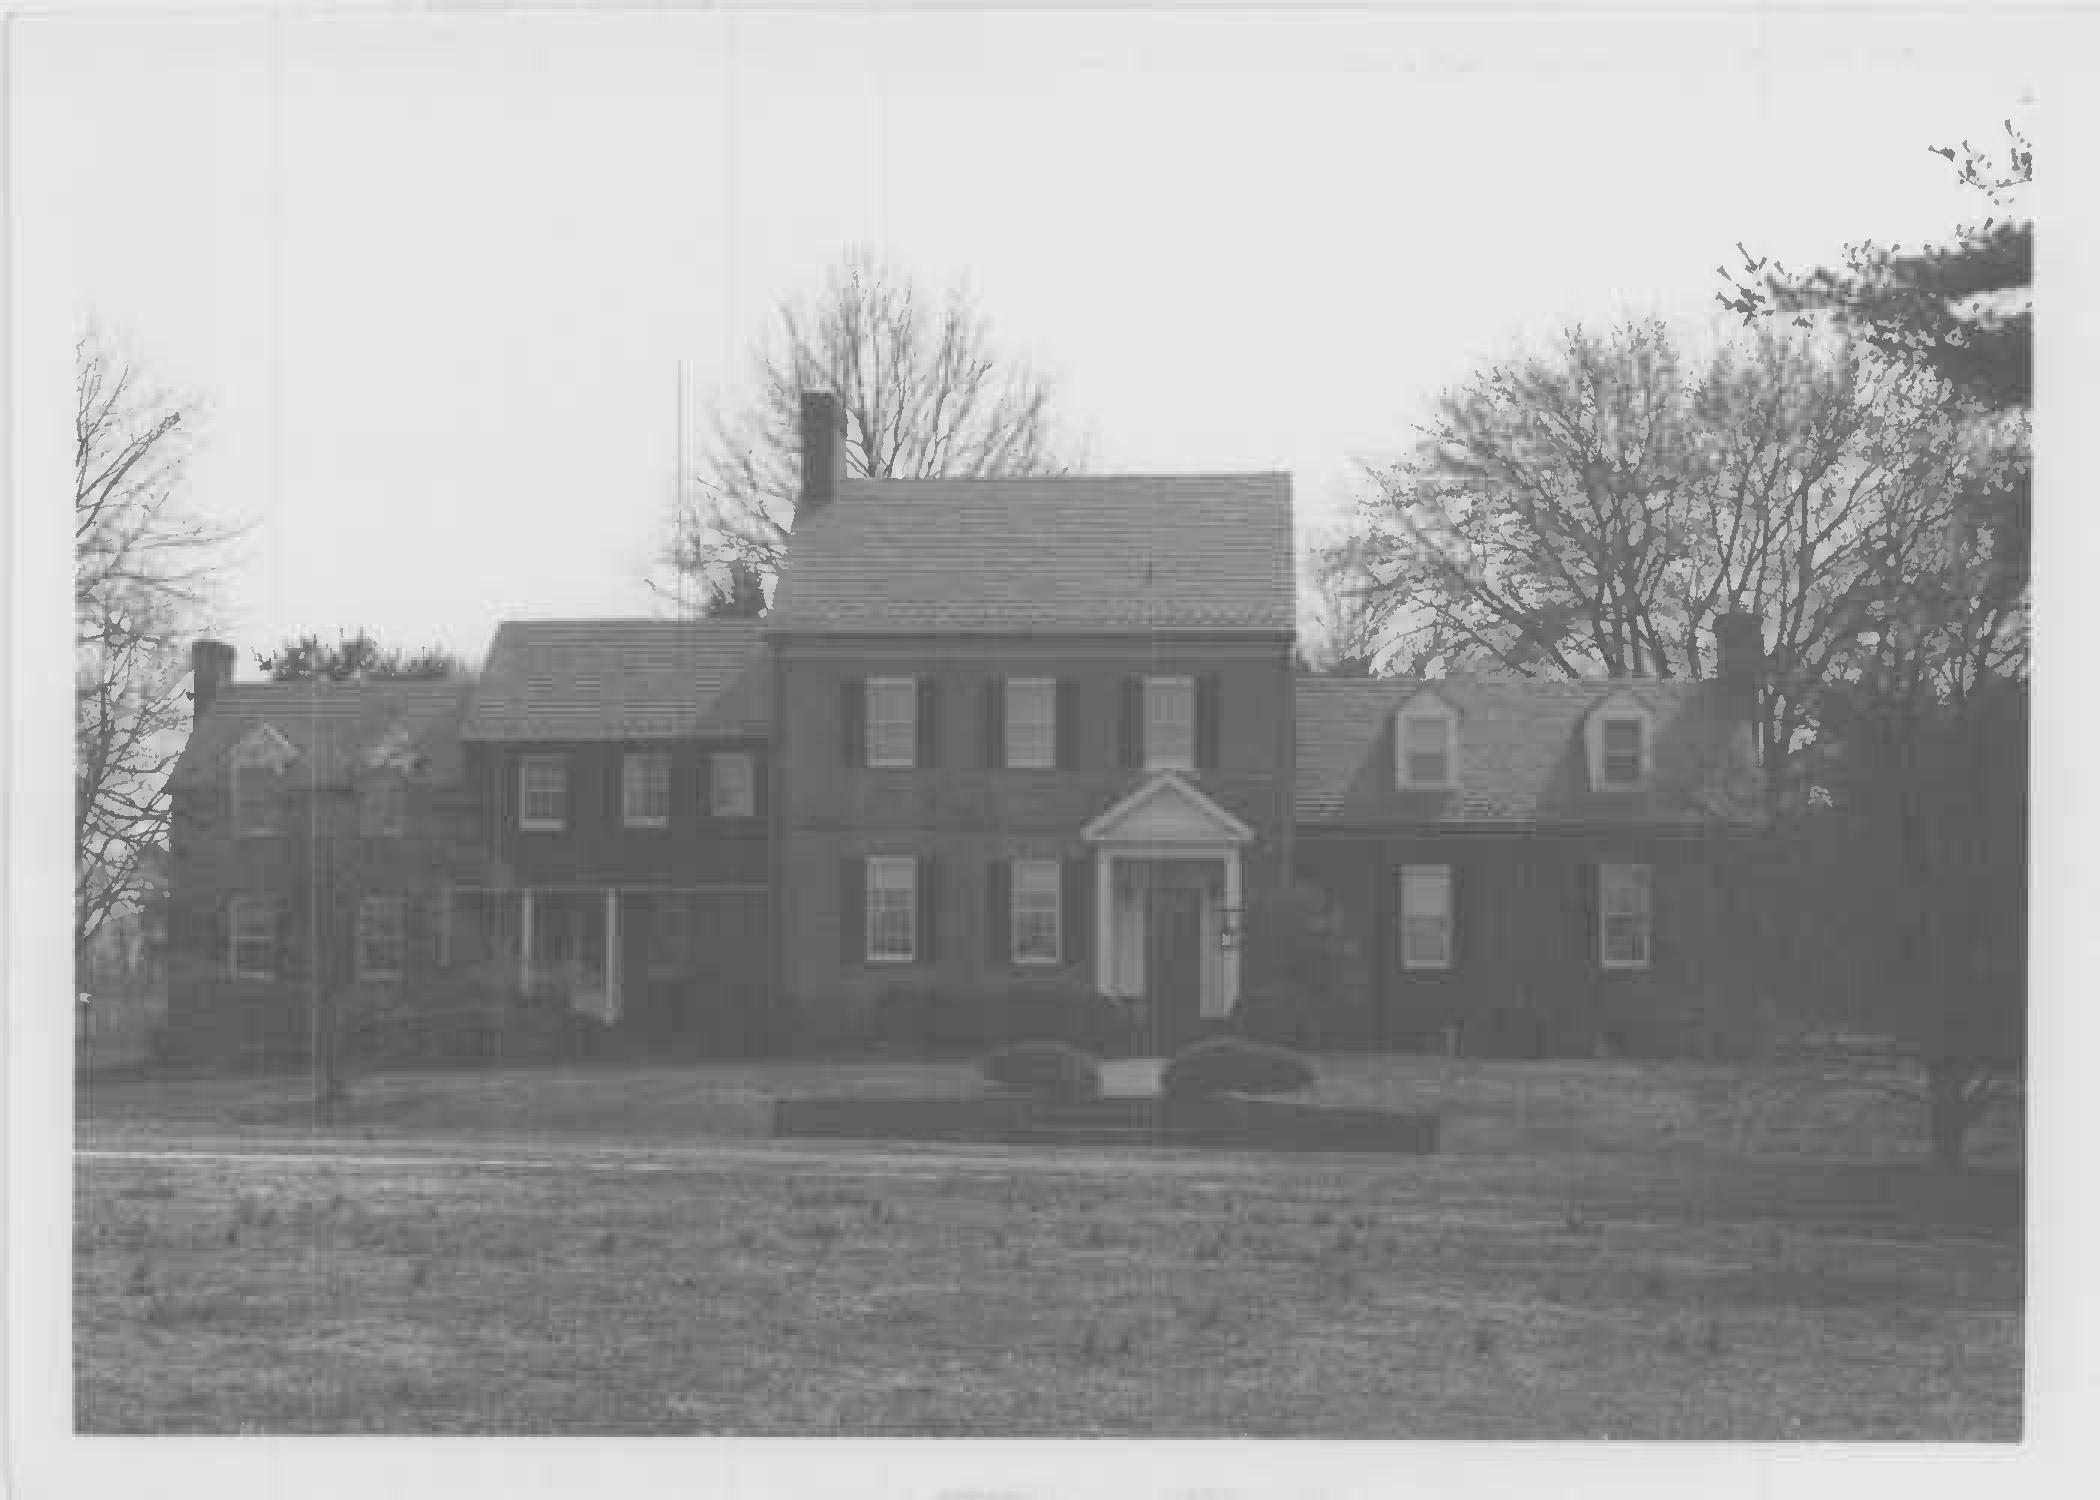 North elevation of Whites Hall. Photo by Donna Ware, Maryland Historical Trust, 1984